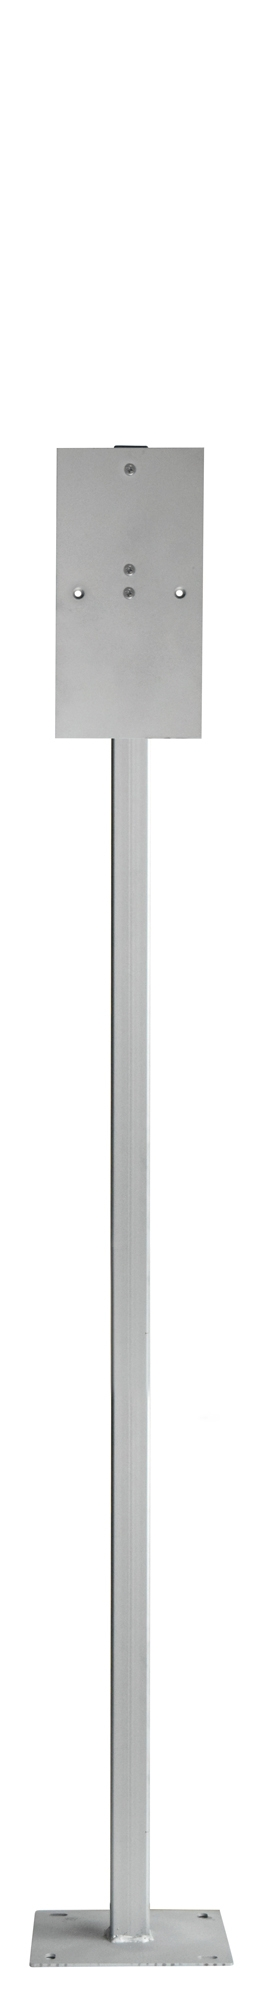 Telescopic vertical pole with mounting plate. Crédits :